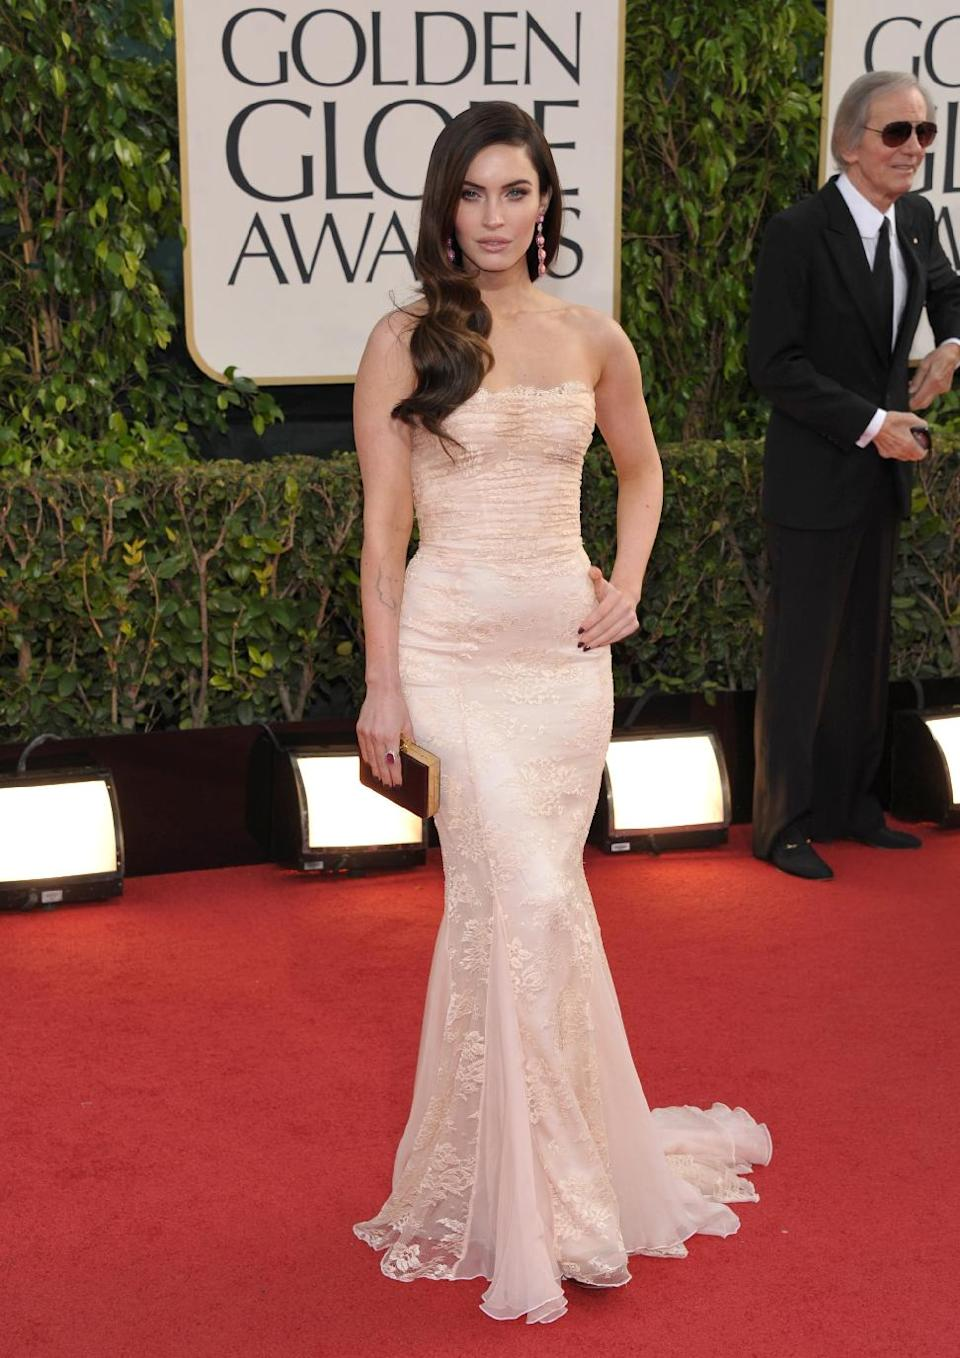 Actress Megan Fox arrives at the 70th Annual Golden Globe Awards at the Beverly Hilton Hotel on Sunday Jan. 13, 2013, in Beverly Hills, Calif. (Photo by John Shearer/Invision/AP)